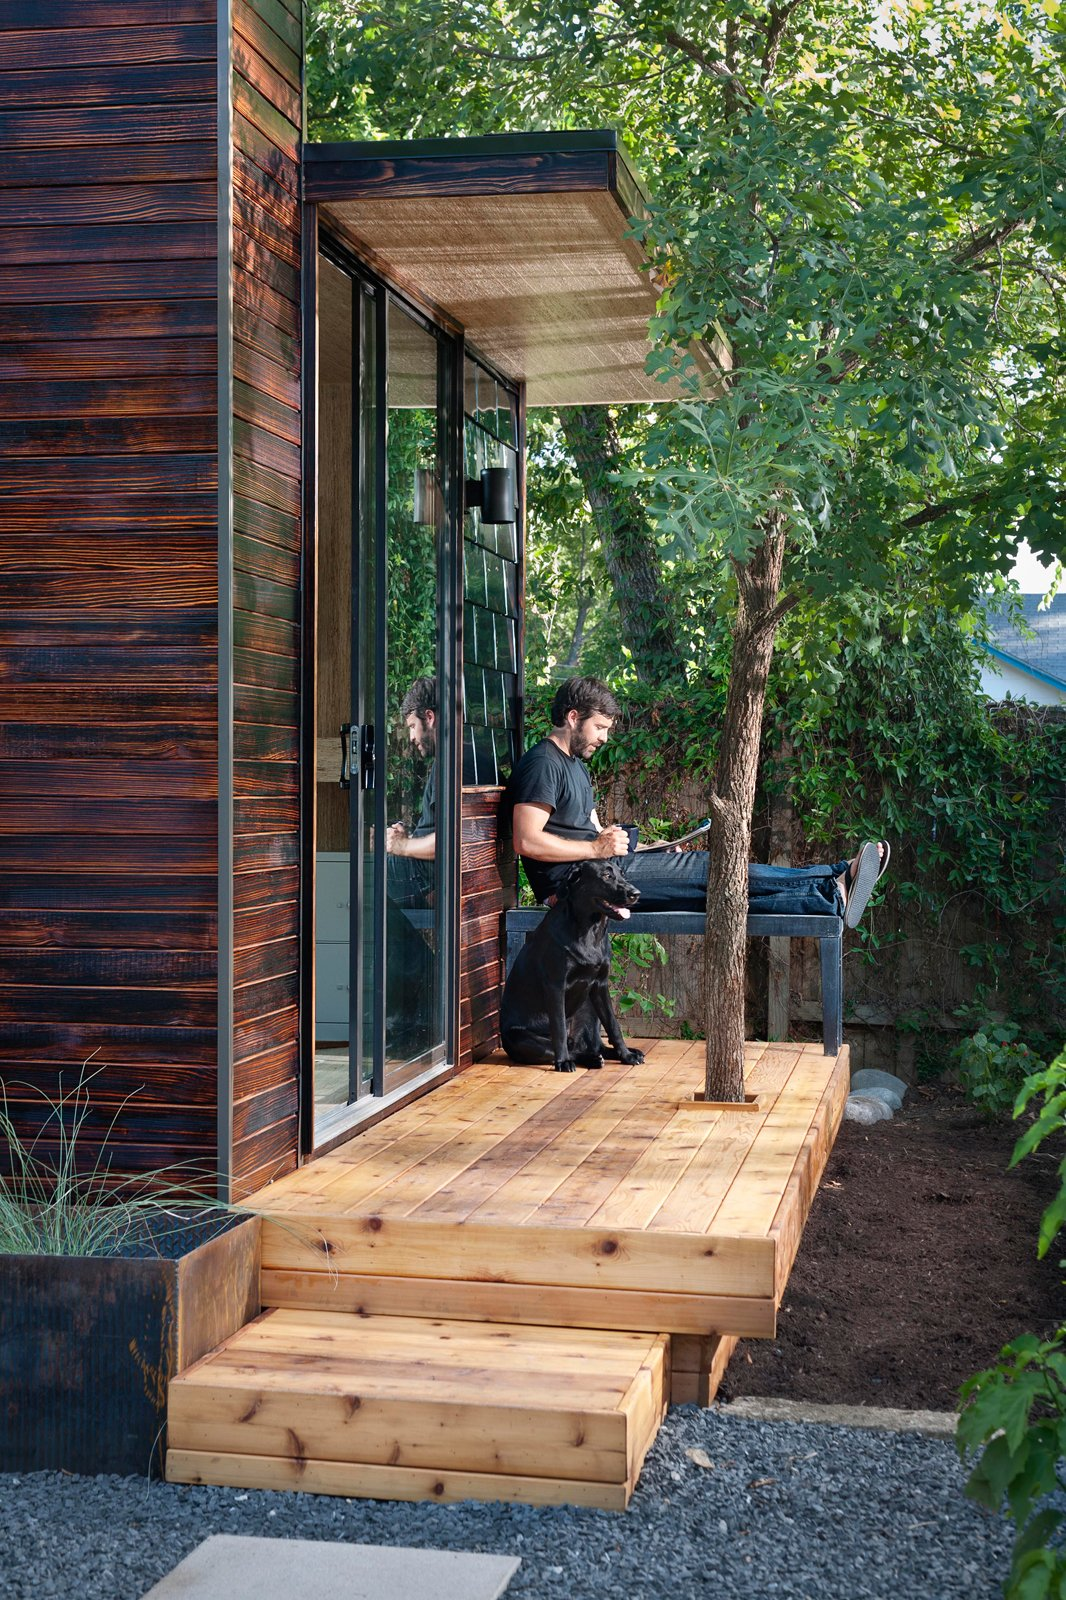 Studio owner Joey Williams uses his space to work from home as an Austin-based media director.  Prefab from On Your Mark, Get Sett